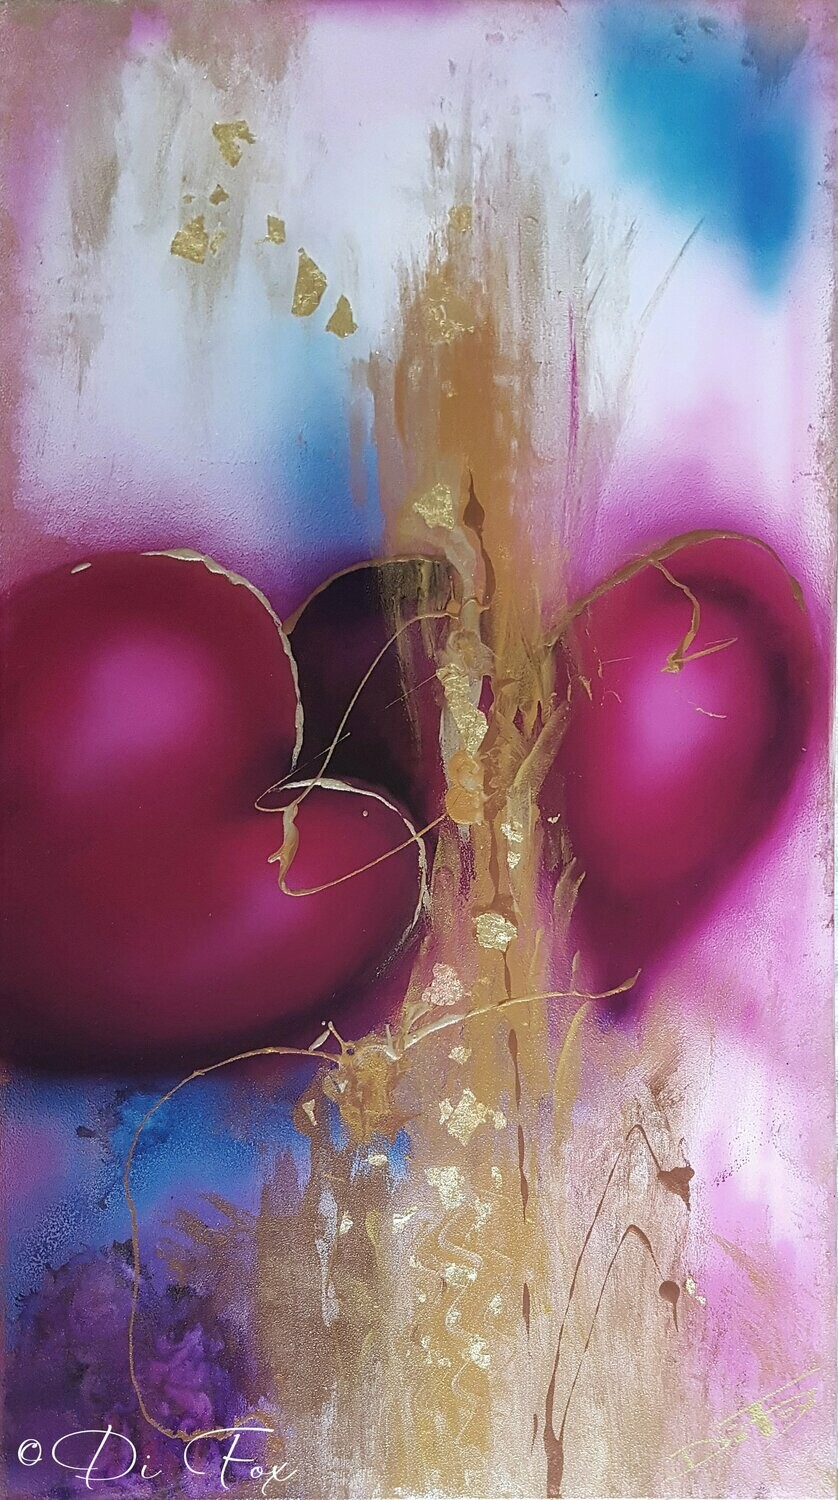 Two Hearts One Love 40 x 71 cm